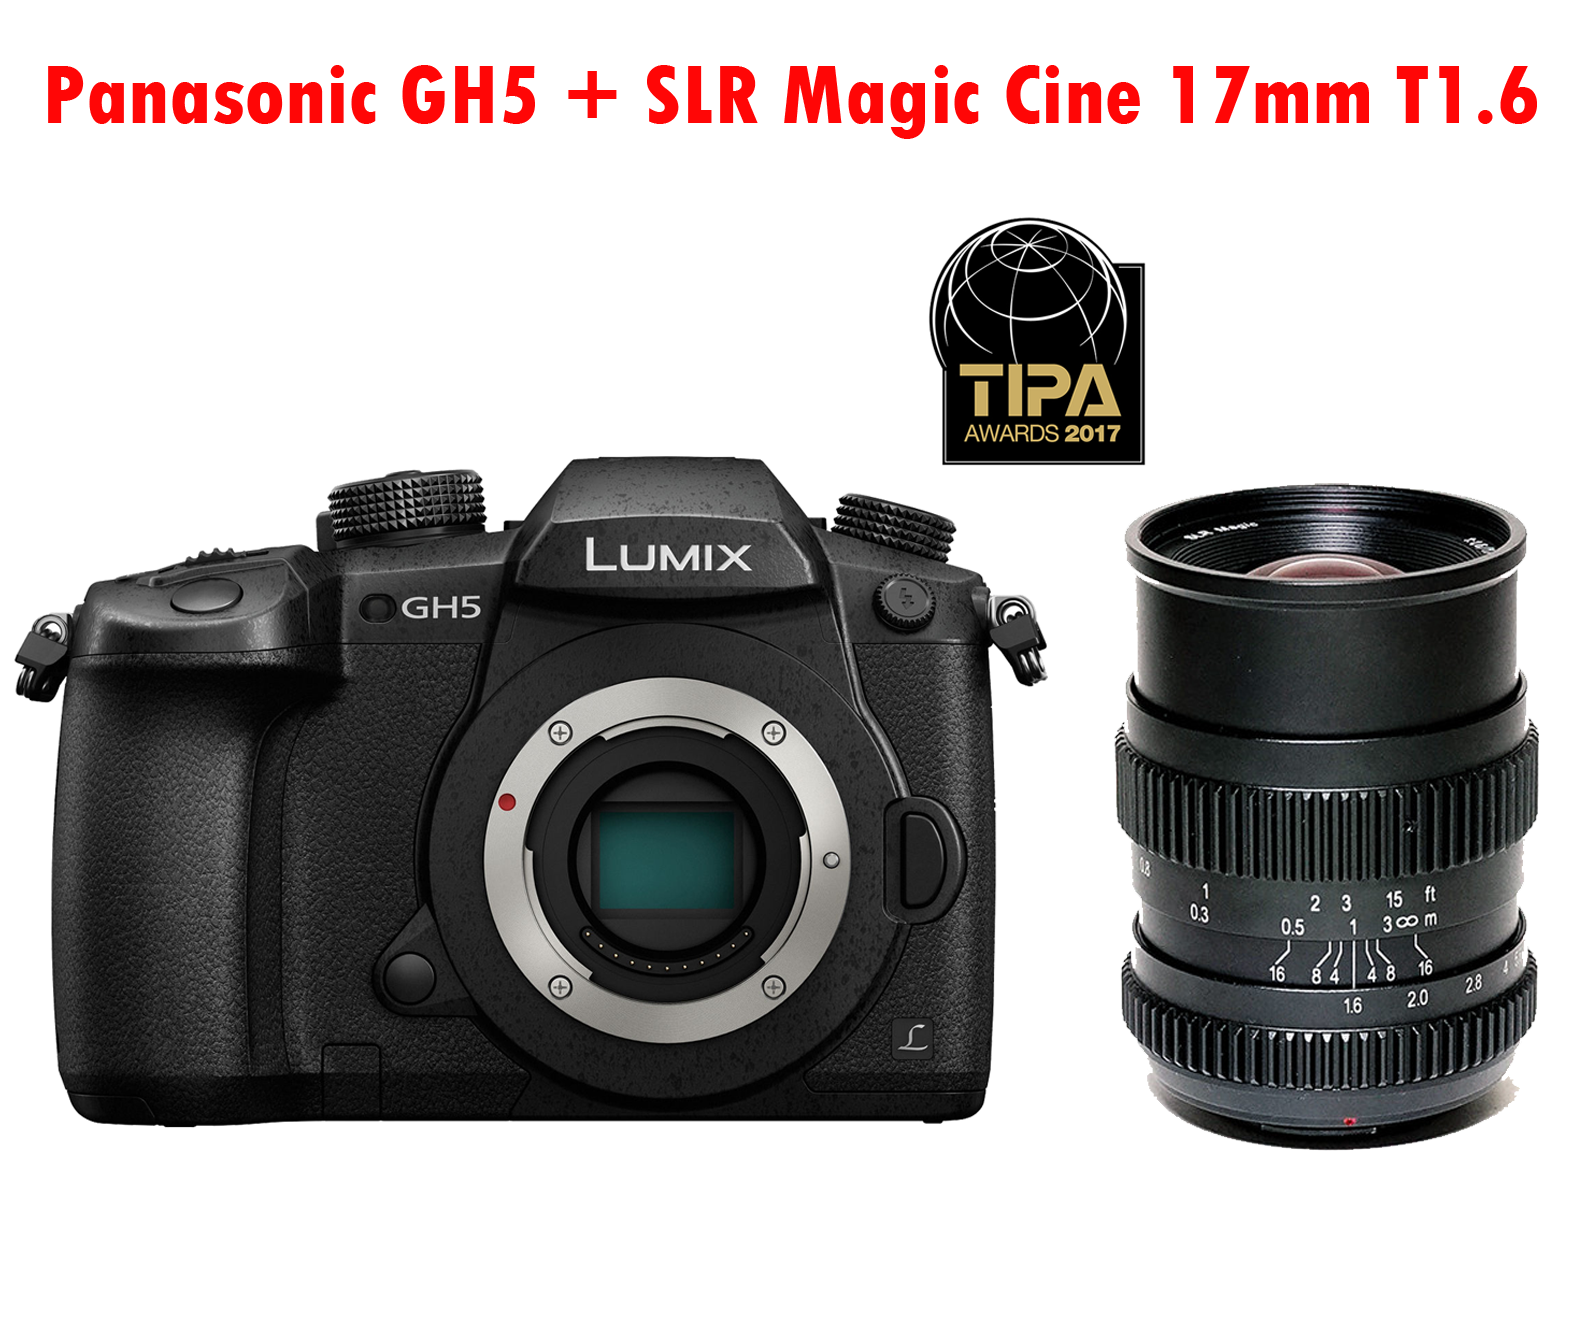 Panasonic Lumix DC-GH5 Mirrorless MFT Camera Body + Obiectiv SLR Magic Cine 17mm T1.6 MFT Mount